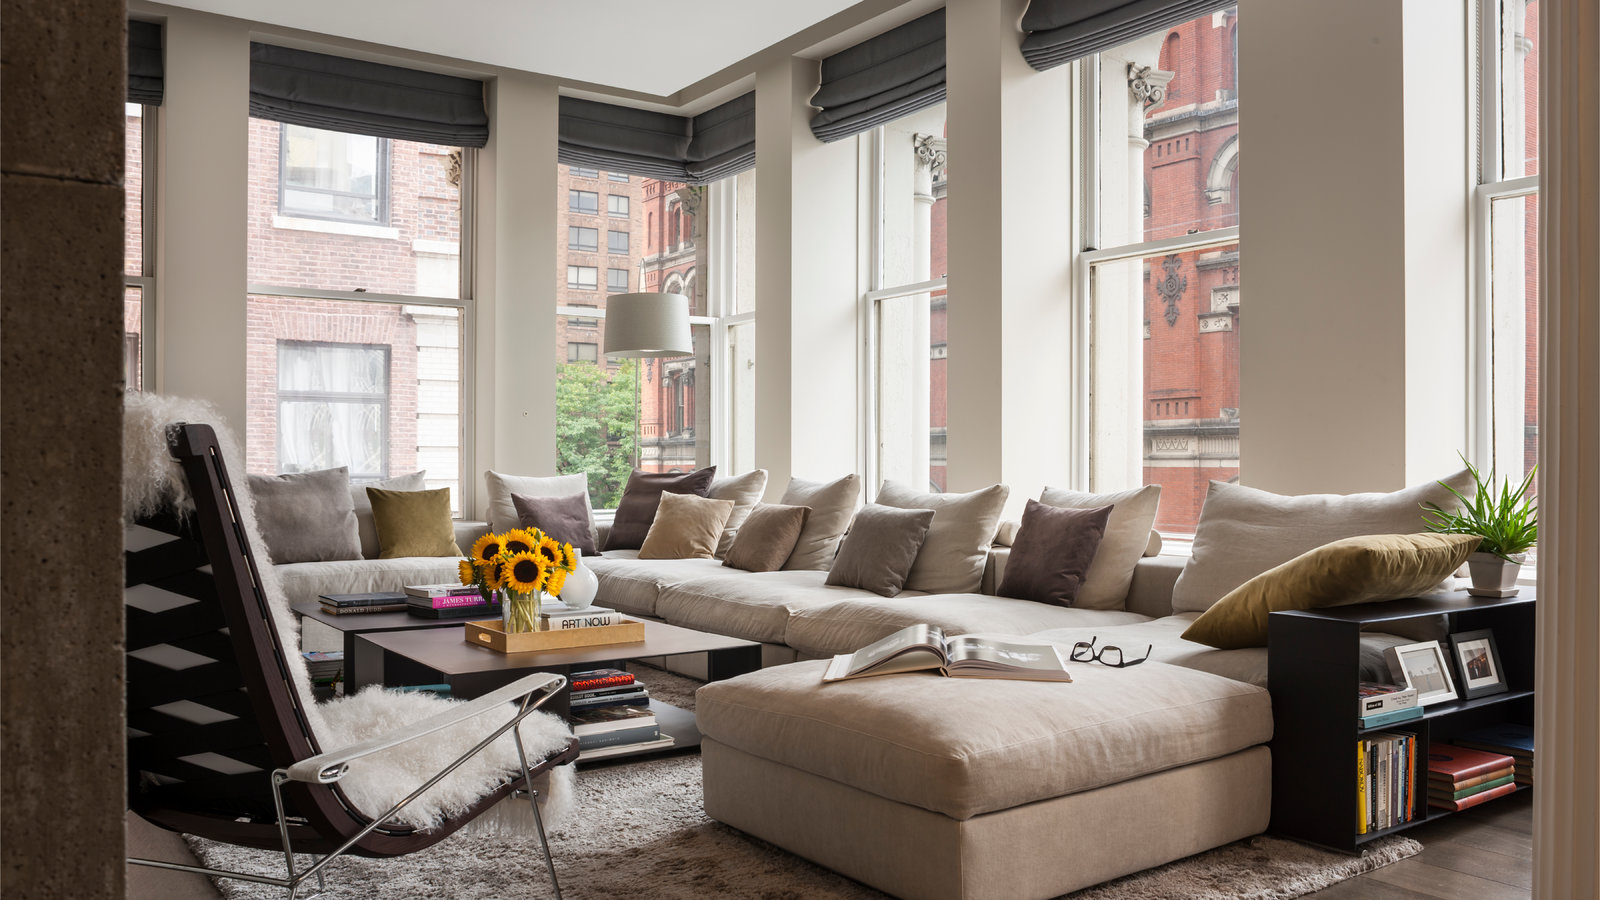 How To Buy A Sectional Sofa The New York Times